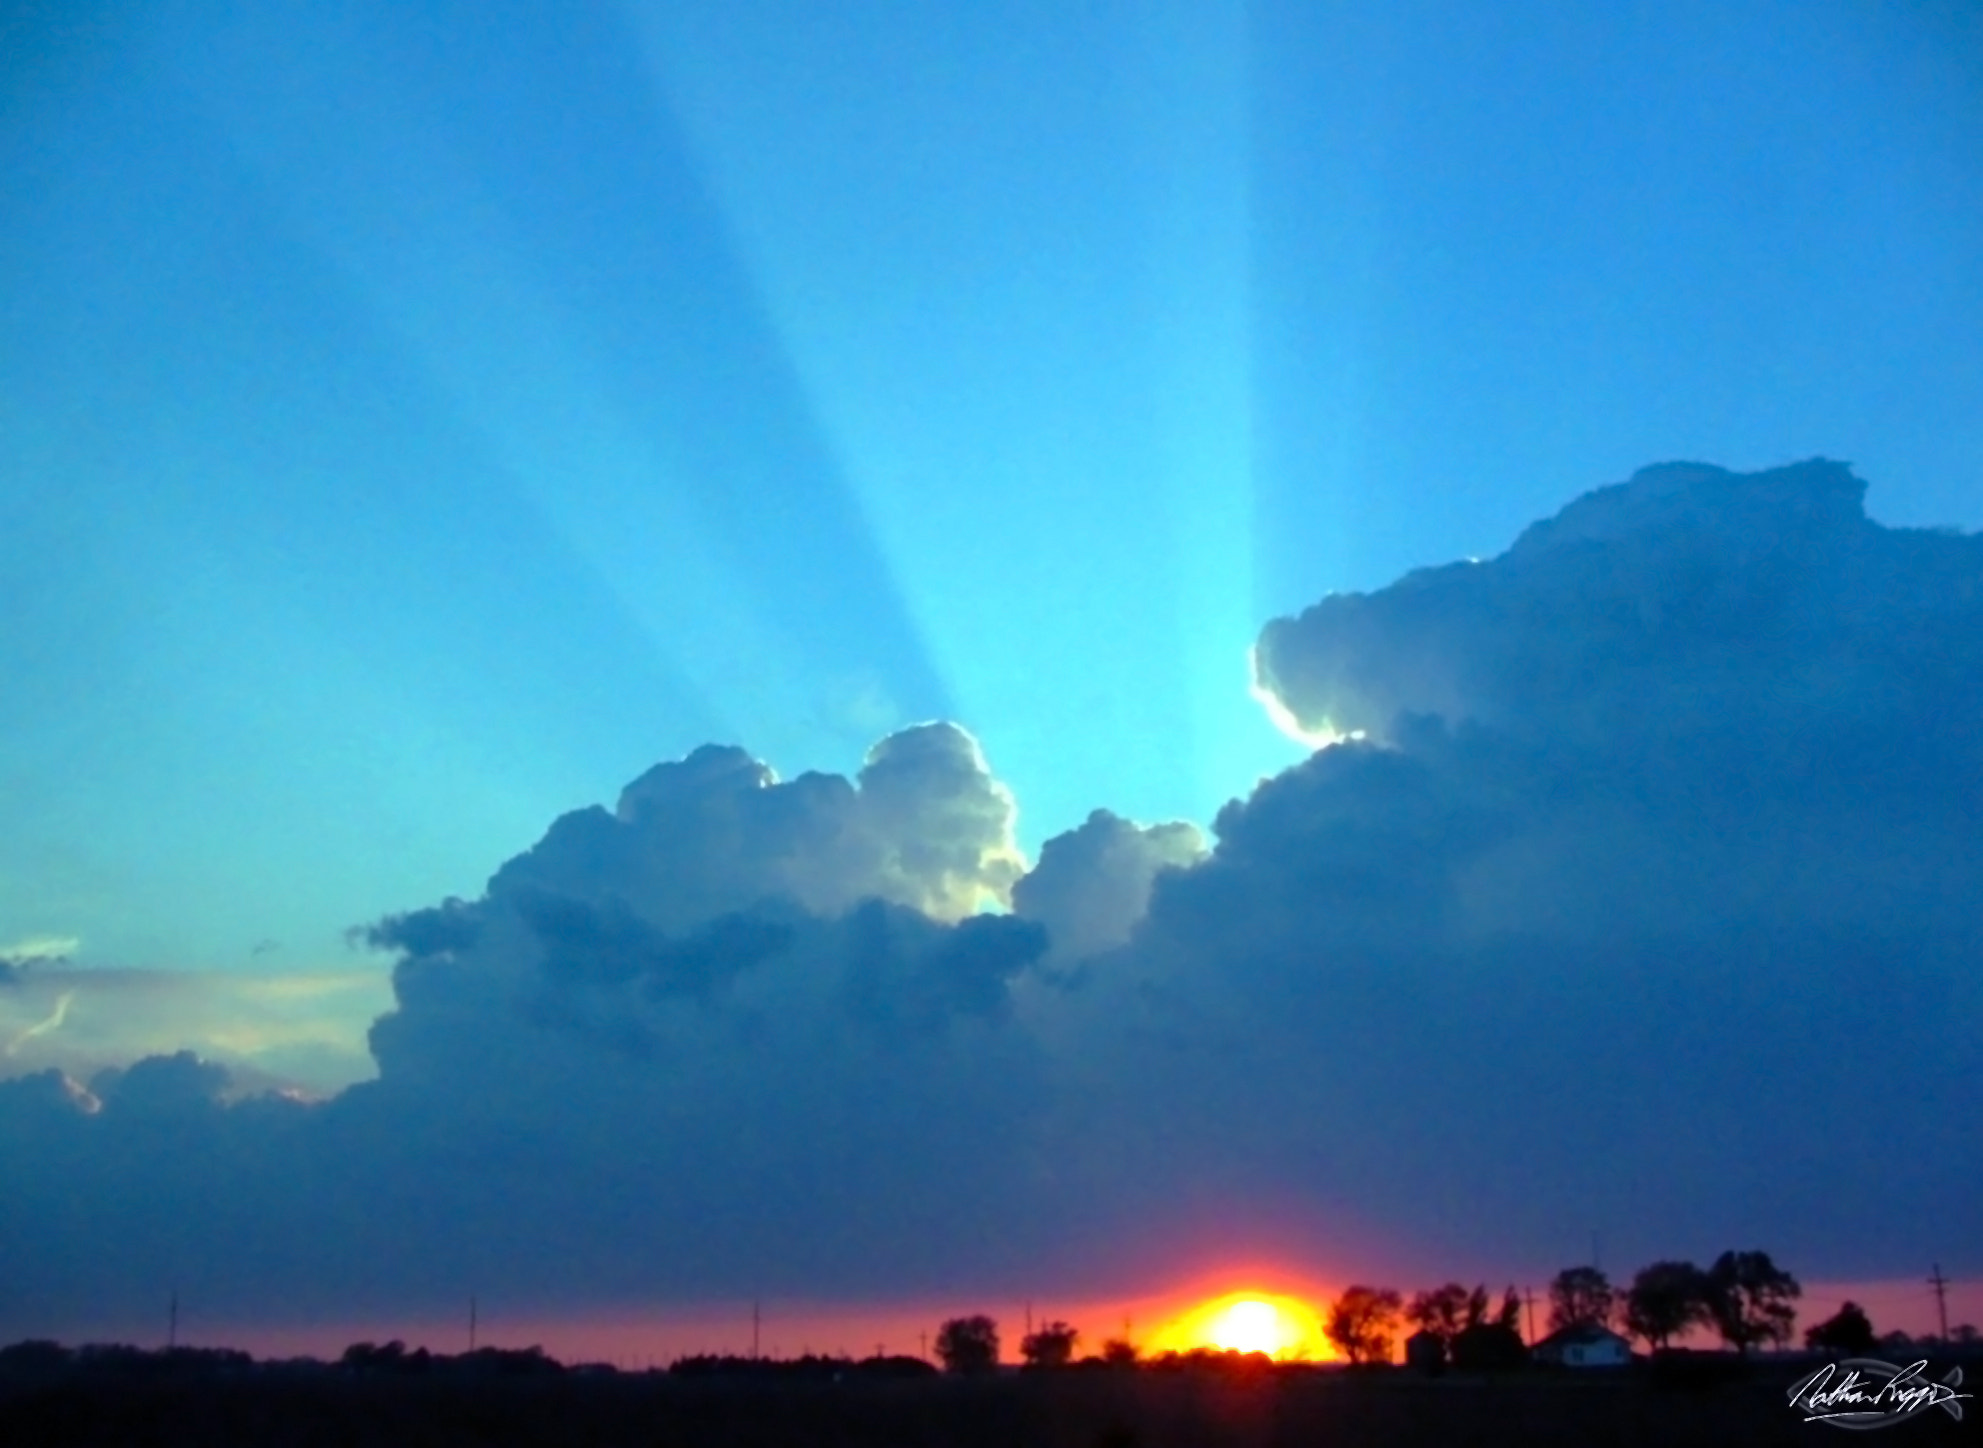 Photograph Rays of Sunlight by Nate Riggins on 500px